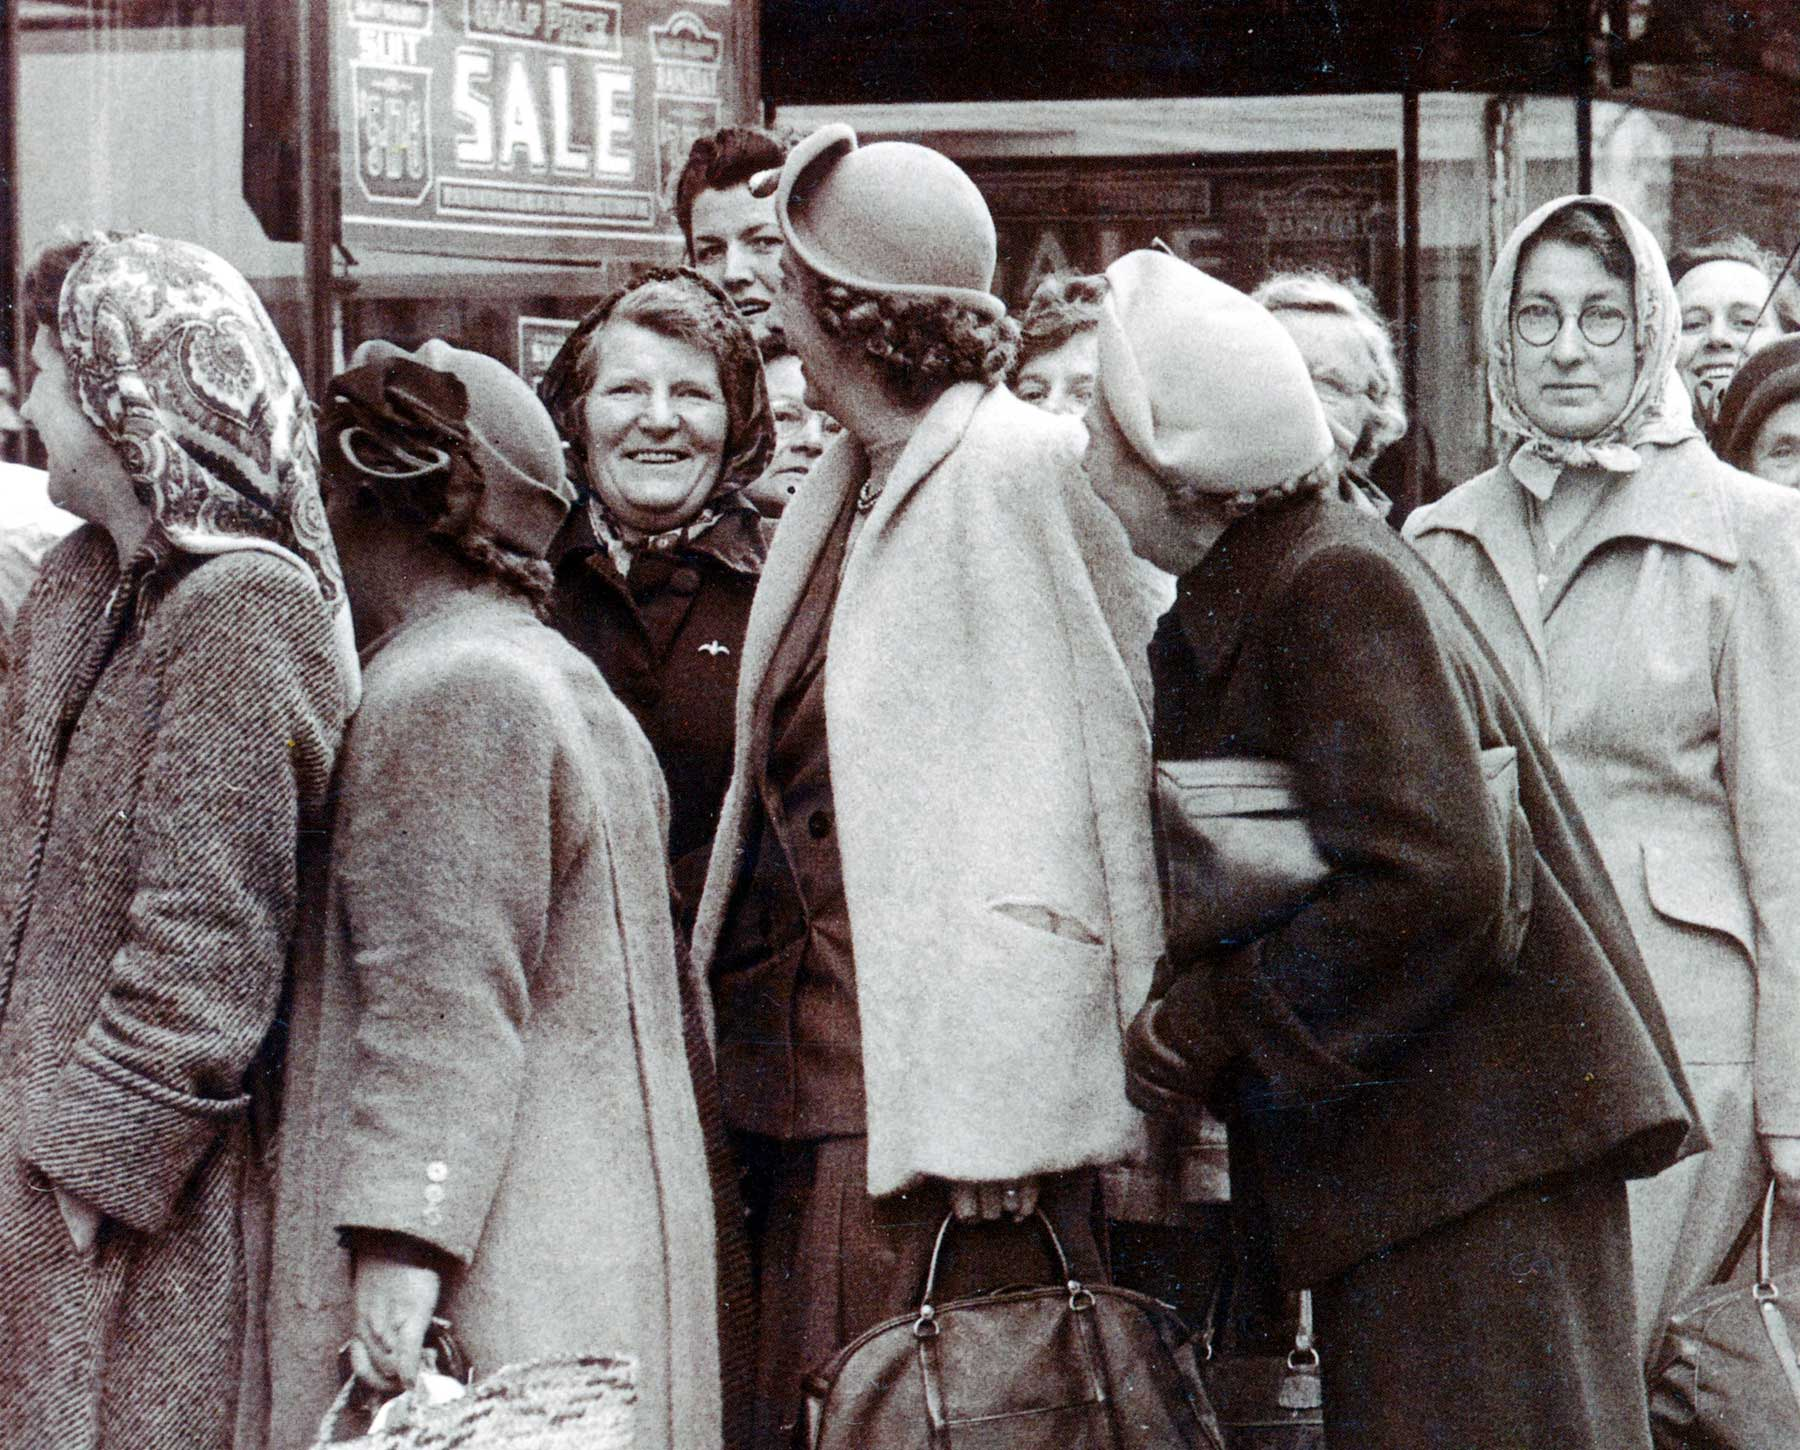 Shoppers queue in Bristol, England in the 1950s